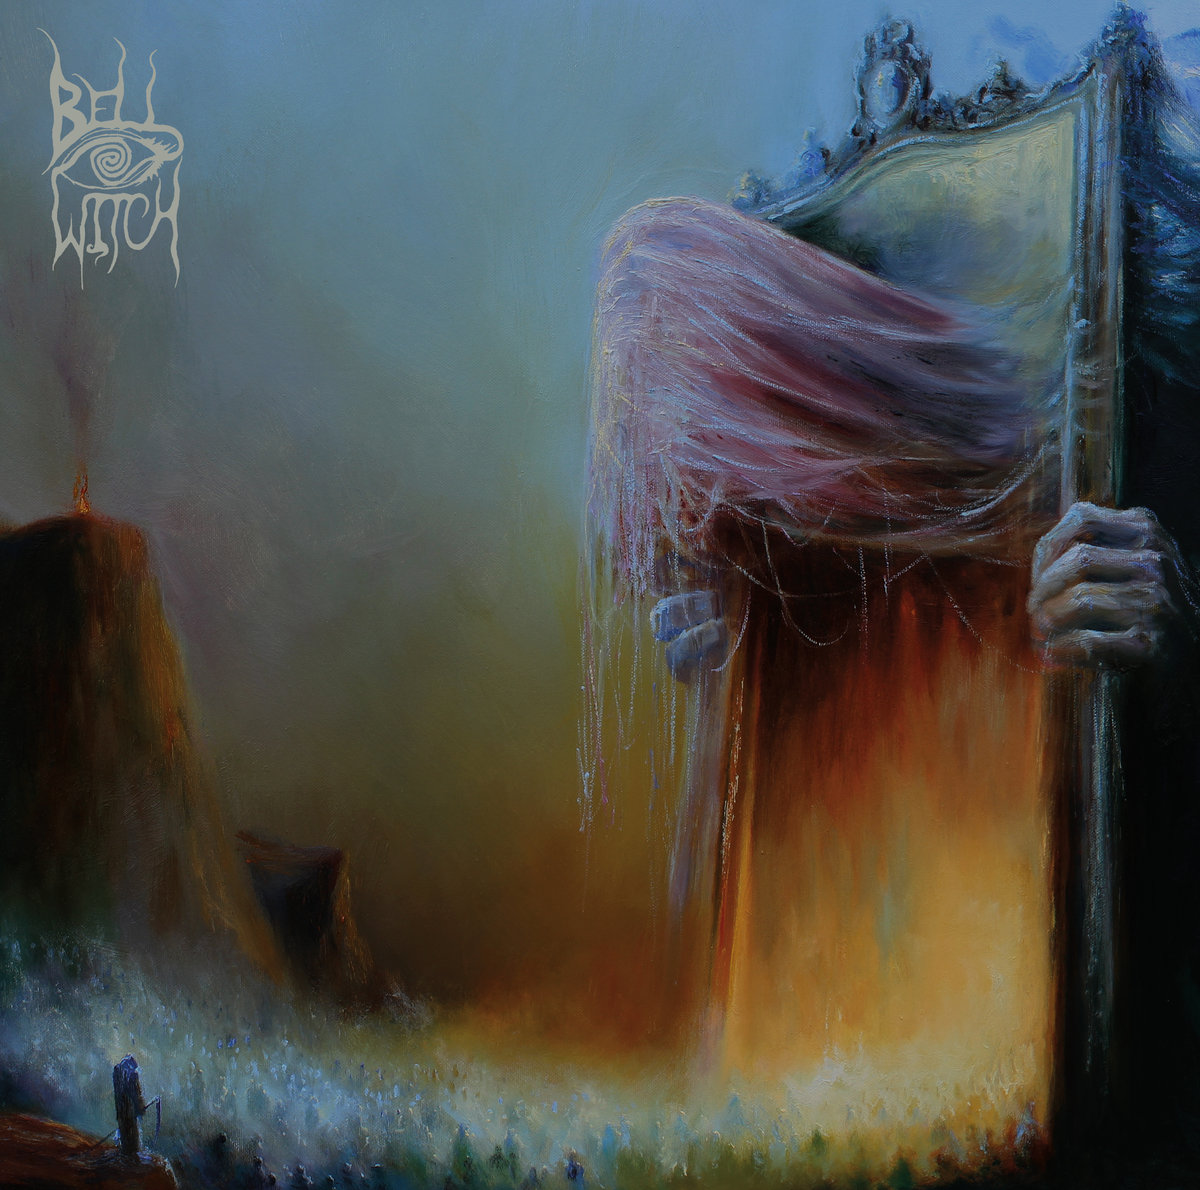 BELL WITCH Mirror Reaper - Vinyl 2xLP (clear)